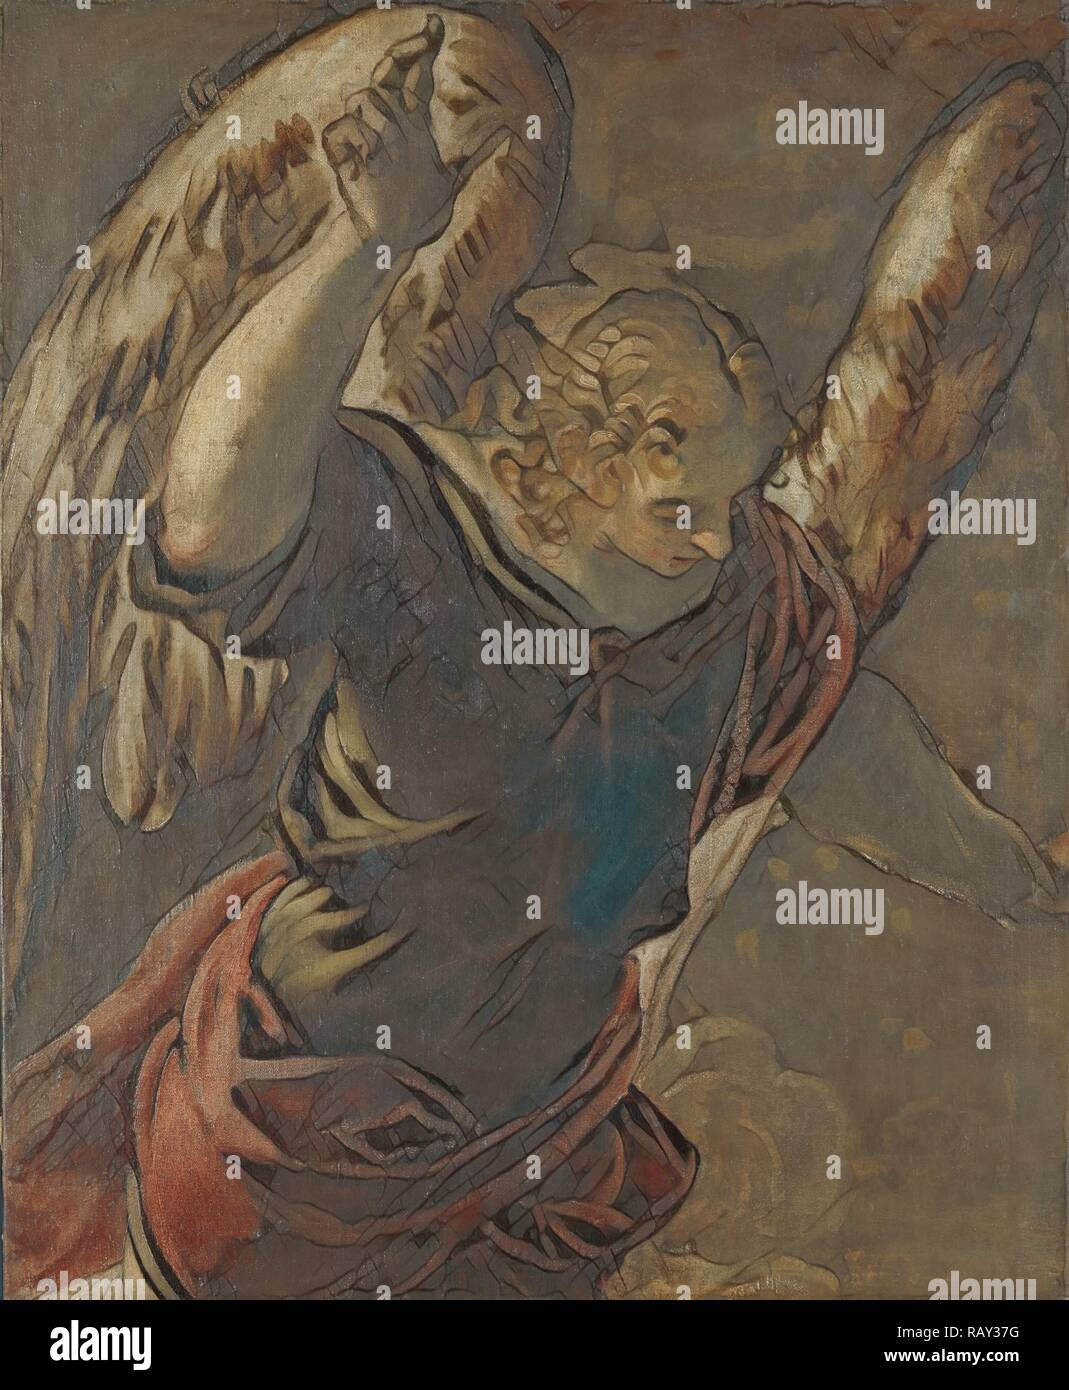 Angel from the Annunciation to the Virgin, Jacopo Tintoretto, 1560 - 1585. Reimagined by Gibon. Classic art with a reimagined - Stock Image